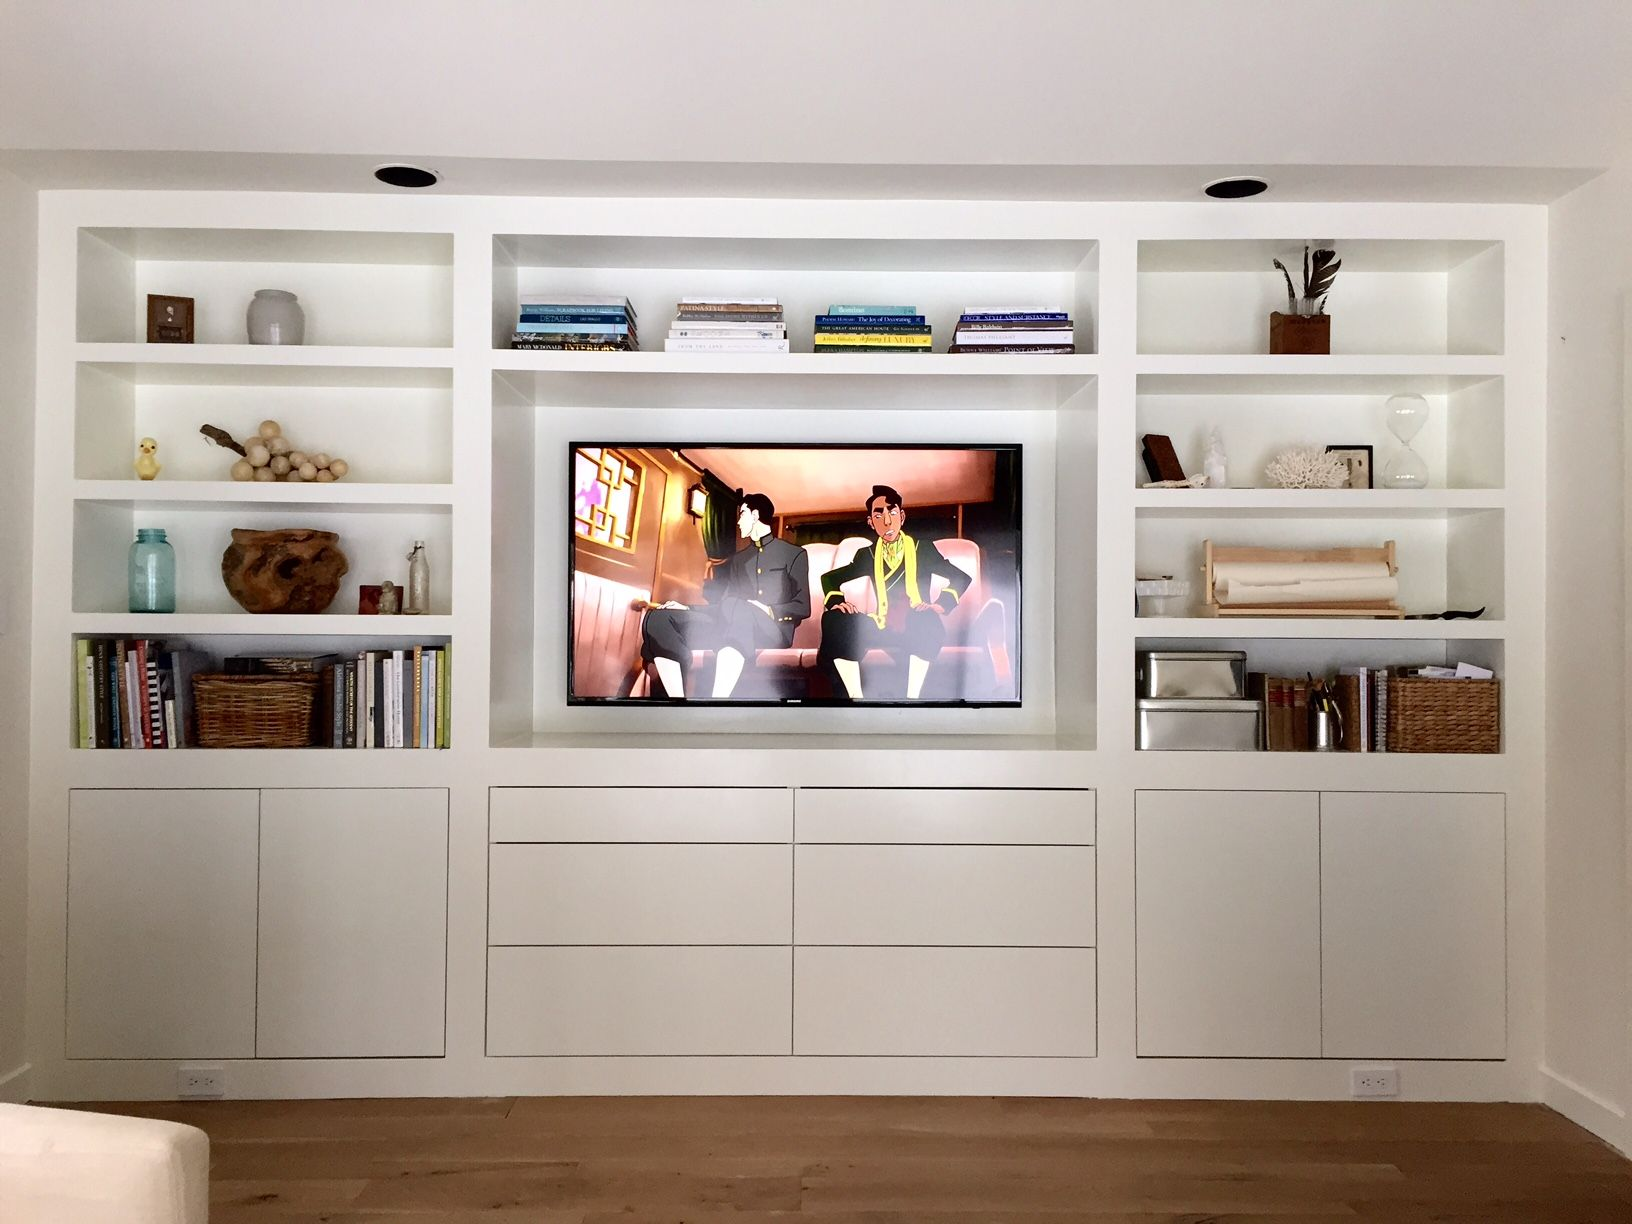 Best Ideas About Modern Tv Room On Pinterest Modern Tv Wall - Cabinet design for living room